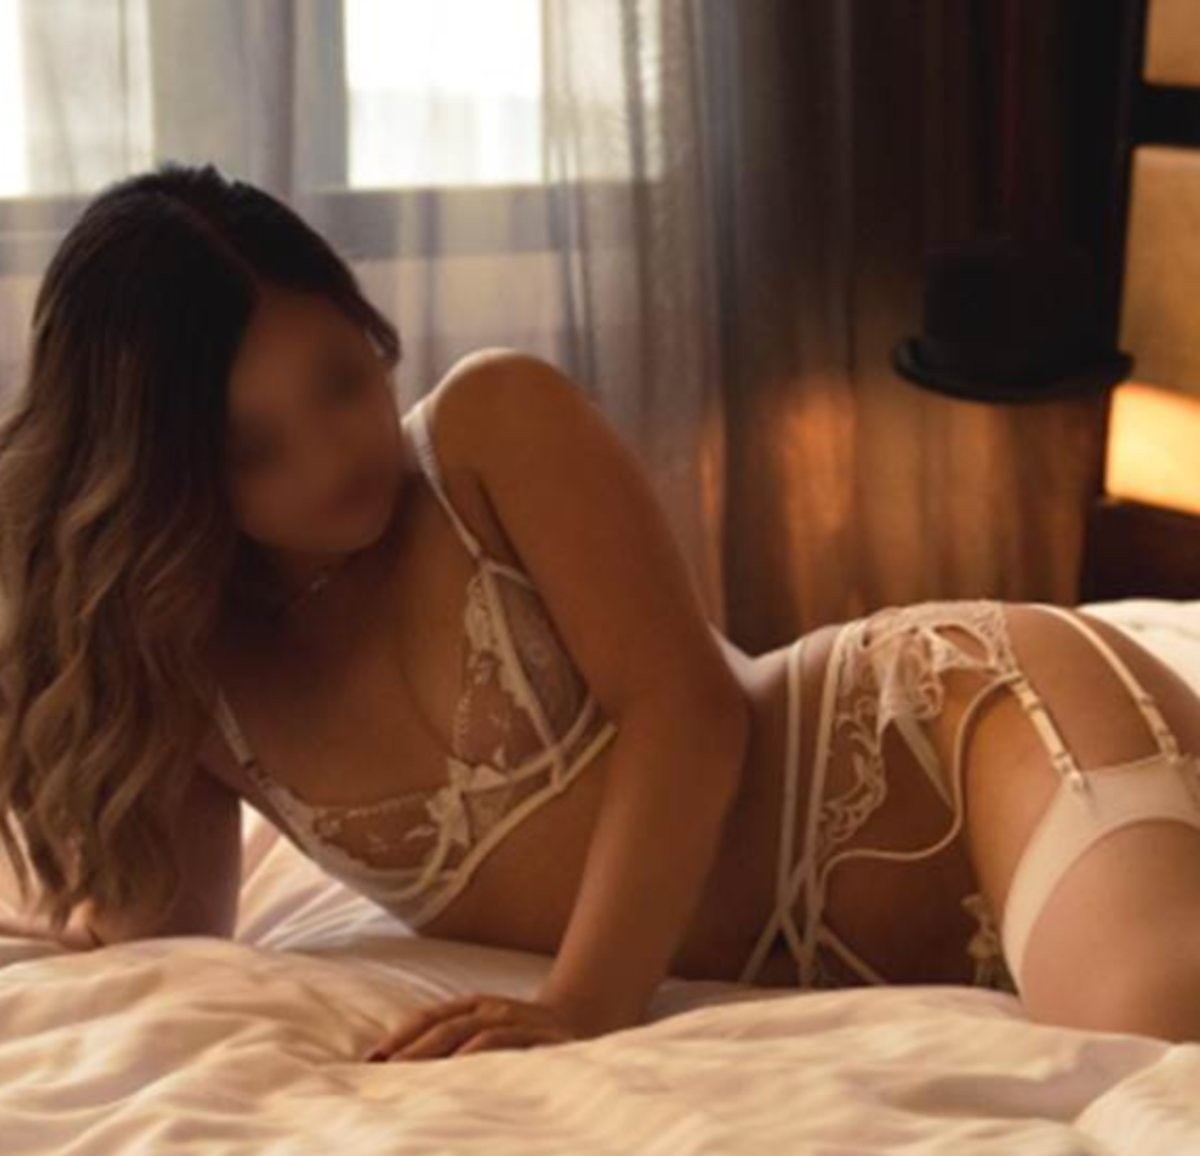 Sydney Asian Escort Agencies Delilah